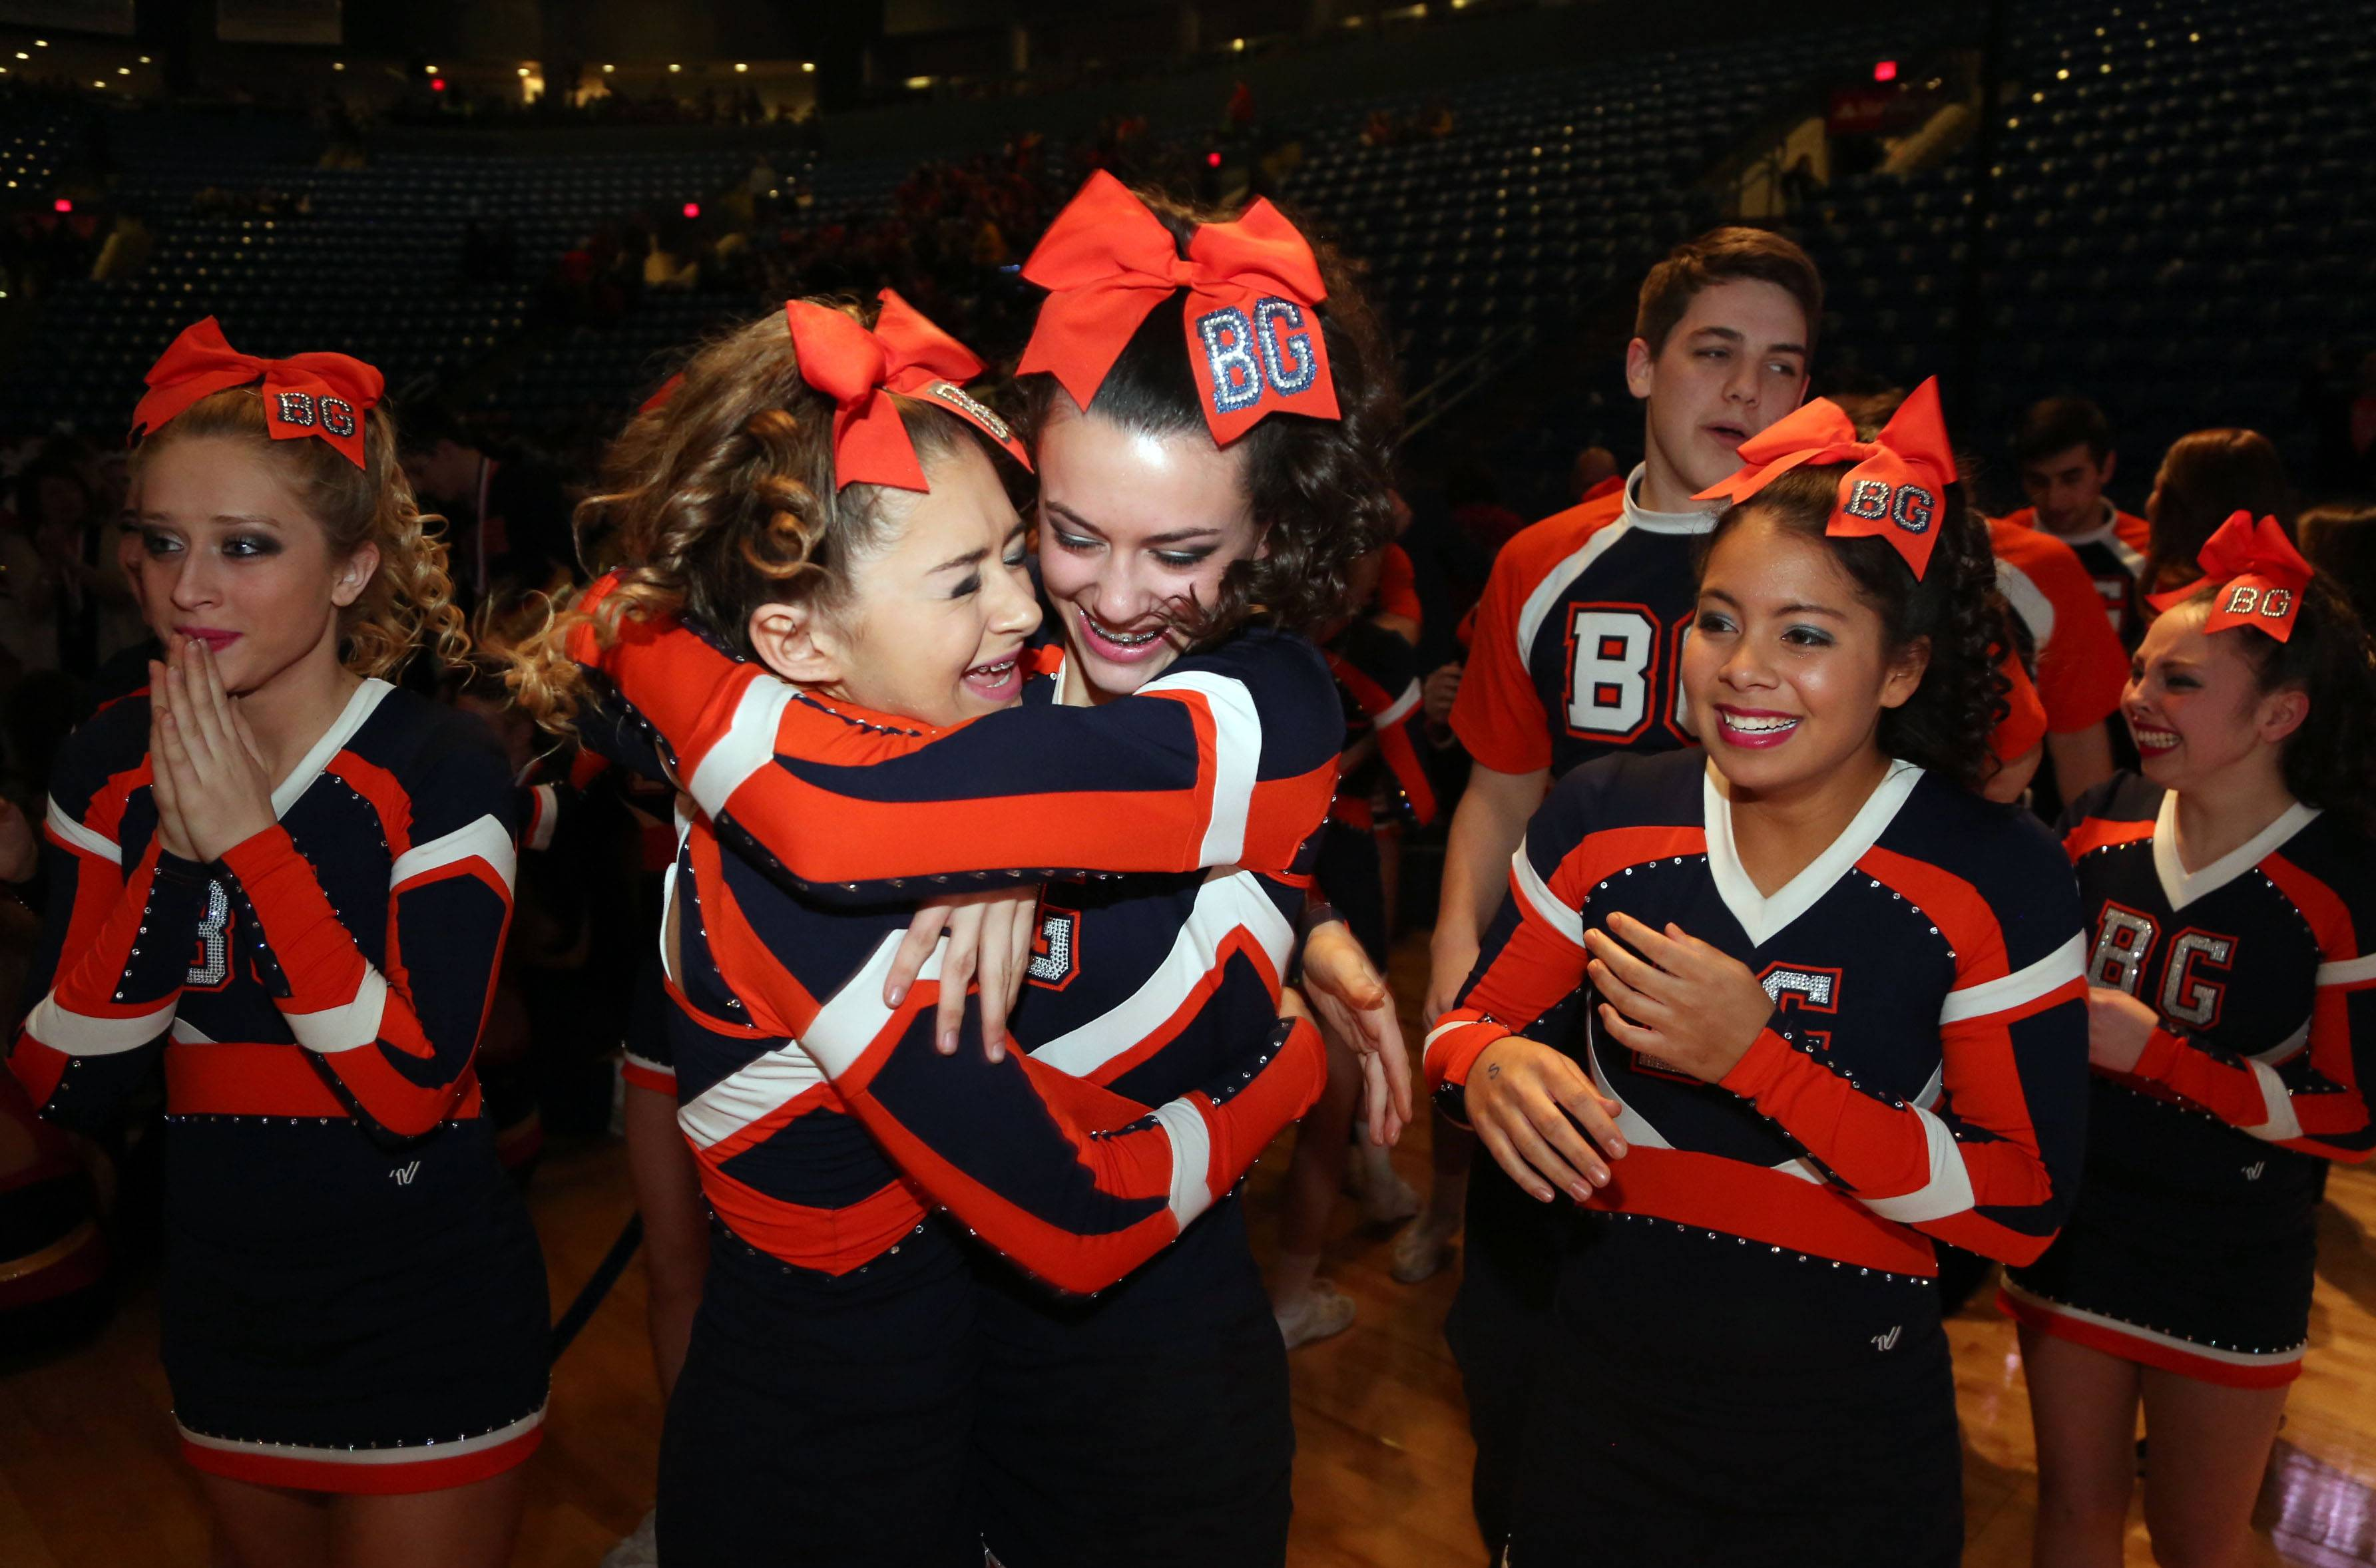 Buffalo Grove High School's squad celebrates after winning first place in the coed division during the state cheerleading finals Saturday in Bloomington.